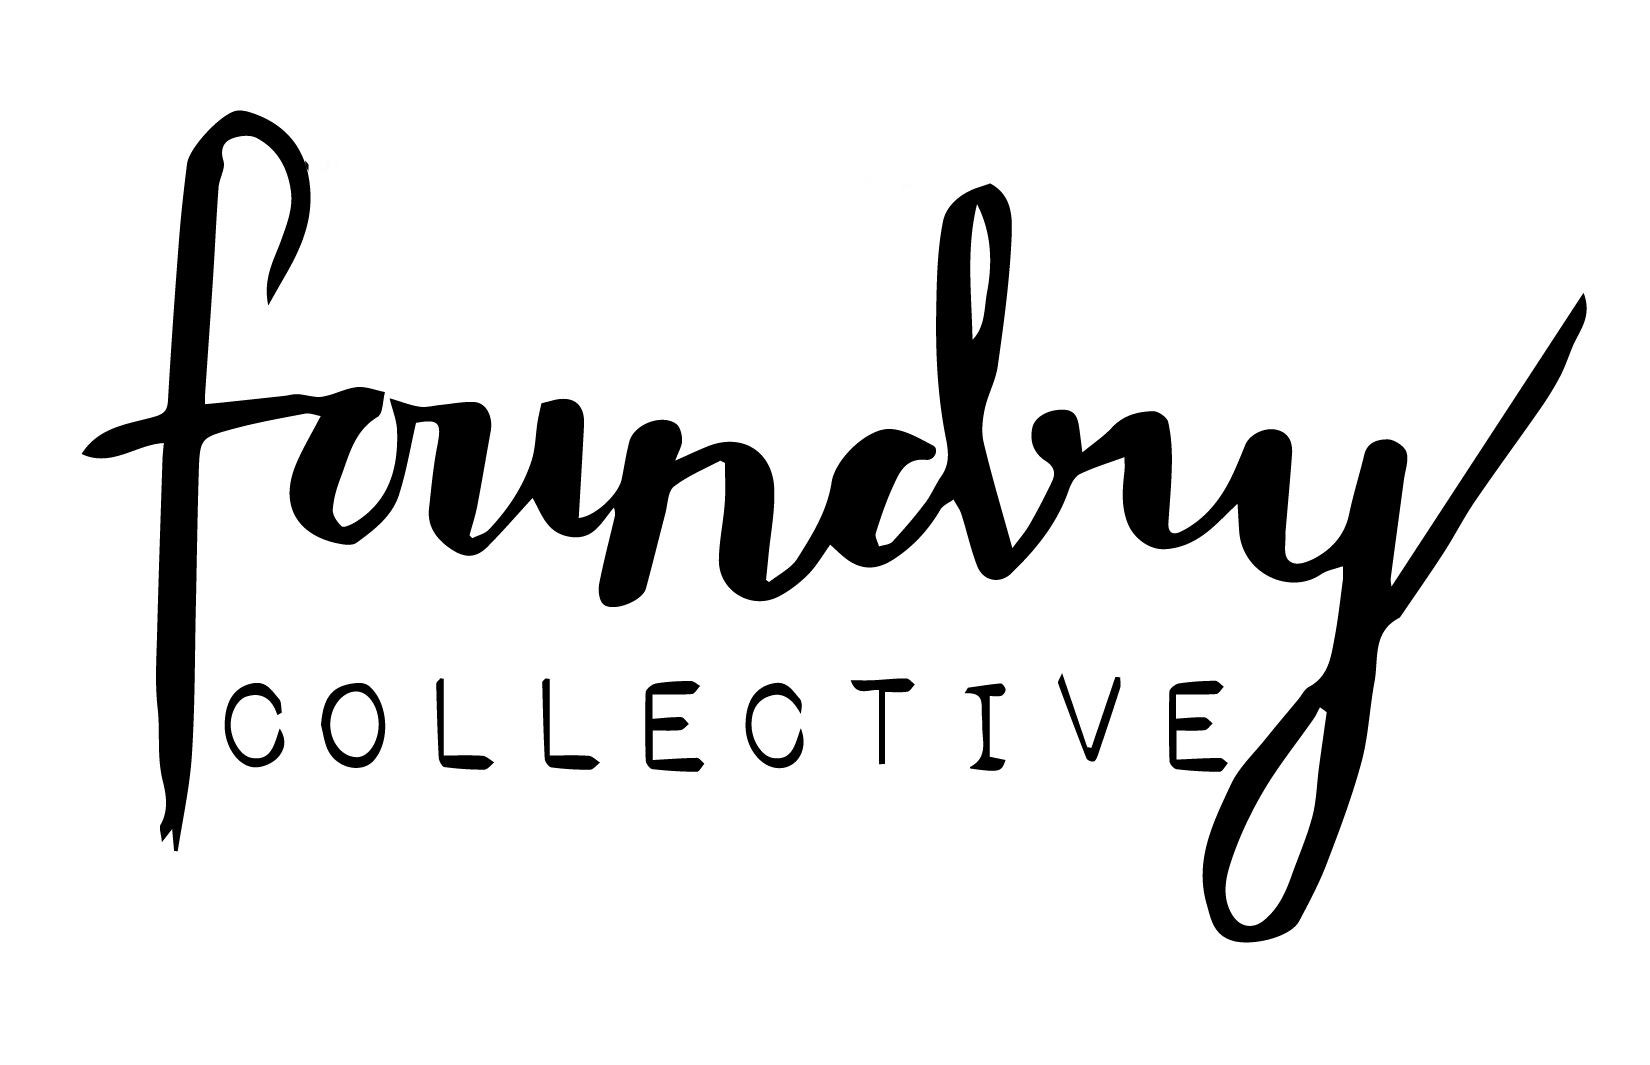 Foundry Collective